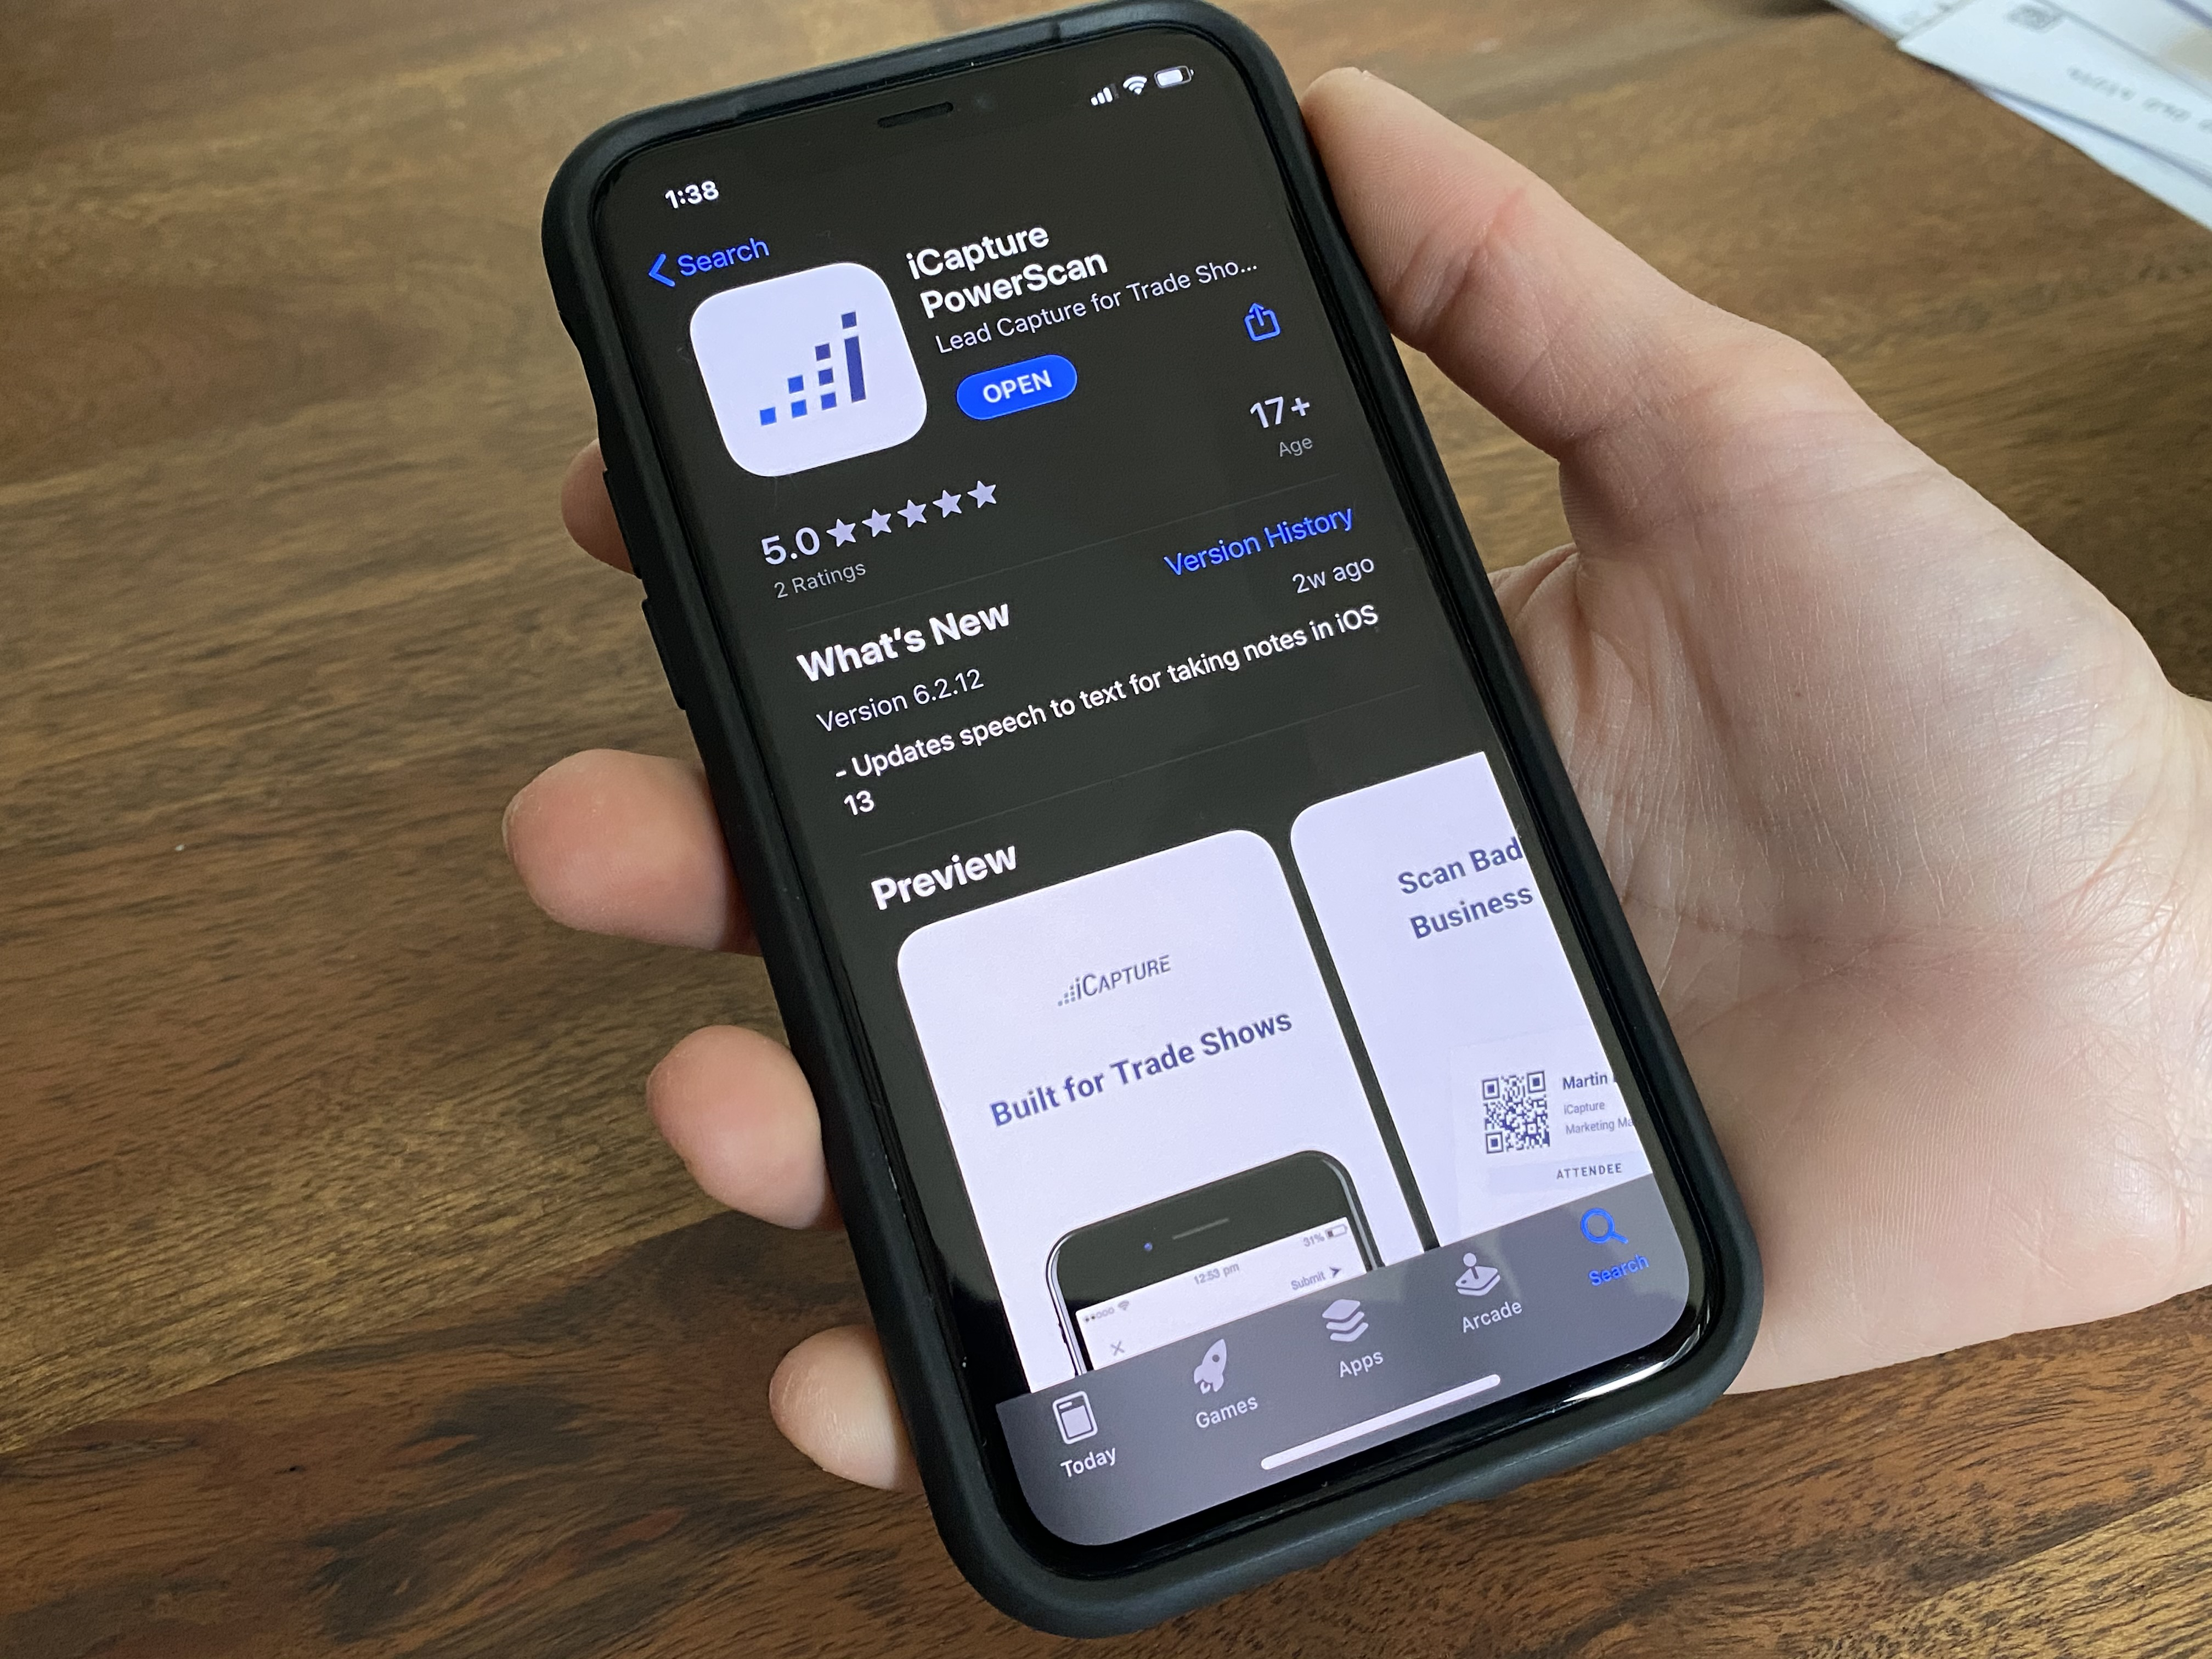 app on phone with hand